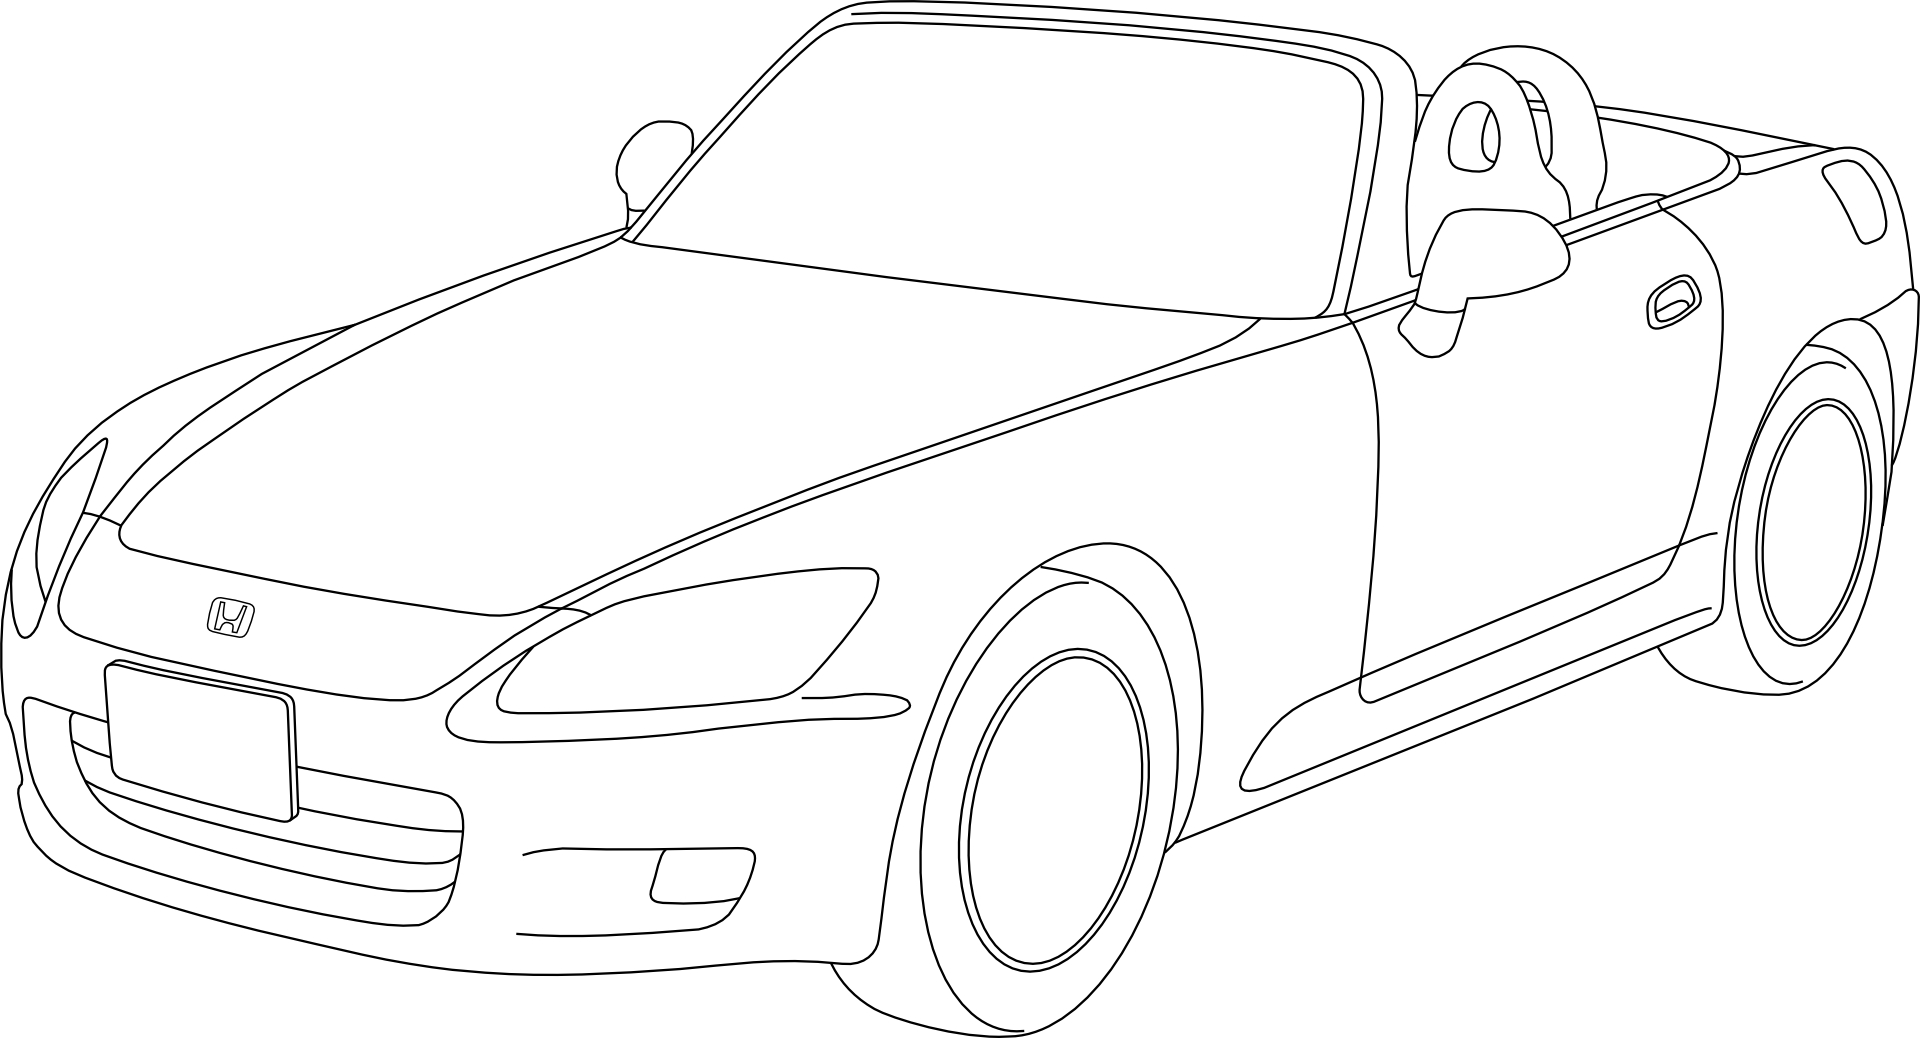 Ausmalbilder Auto Golf : Car Drawing Template At Getdrawings Com Free For Personal Use Car